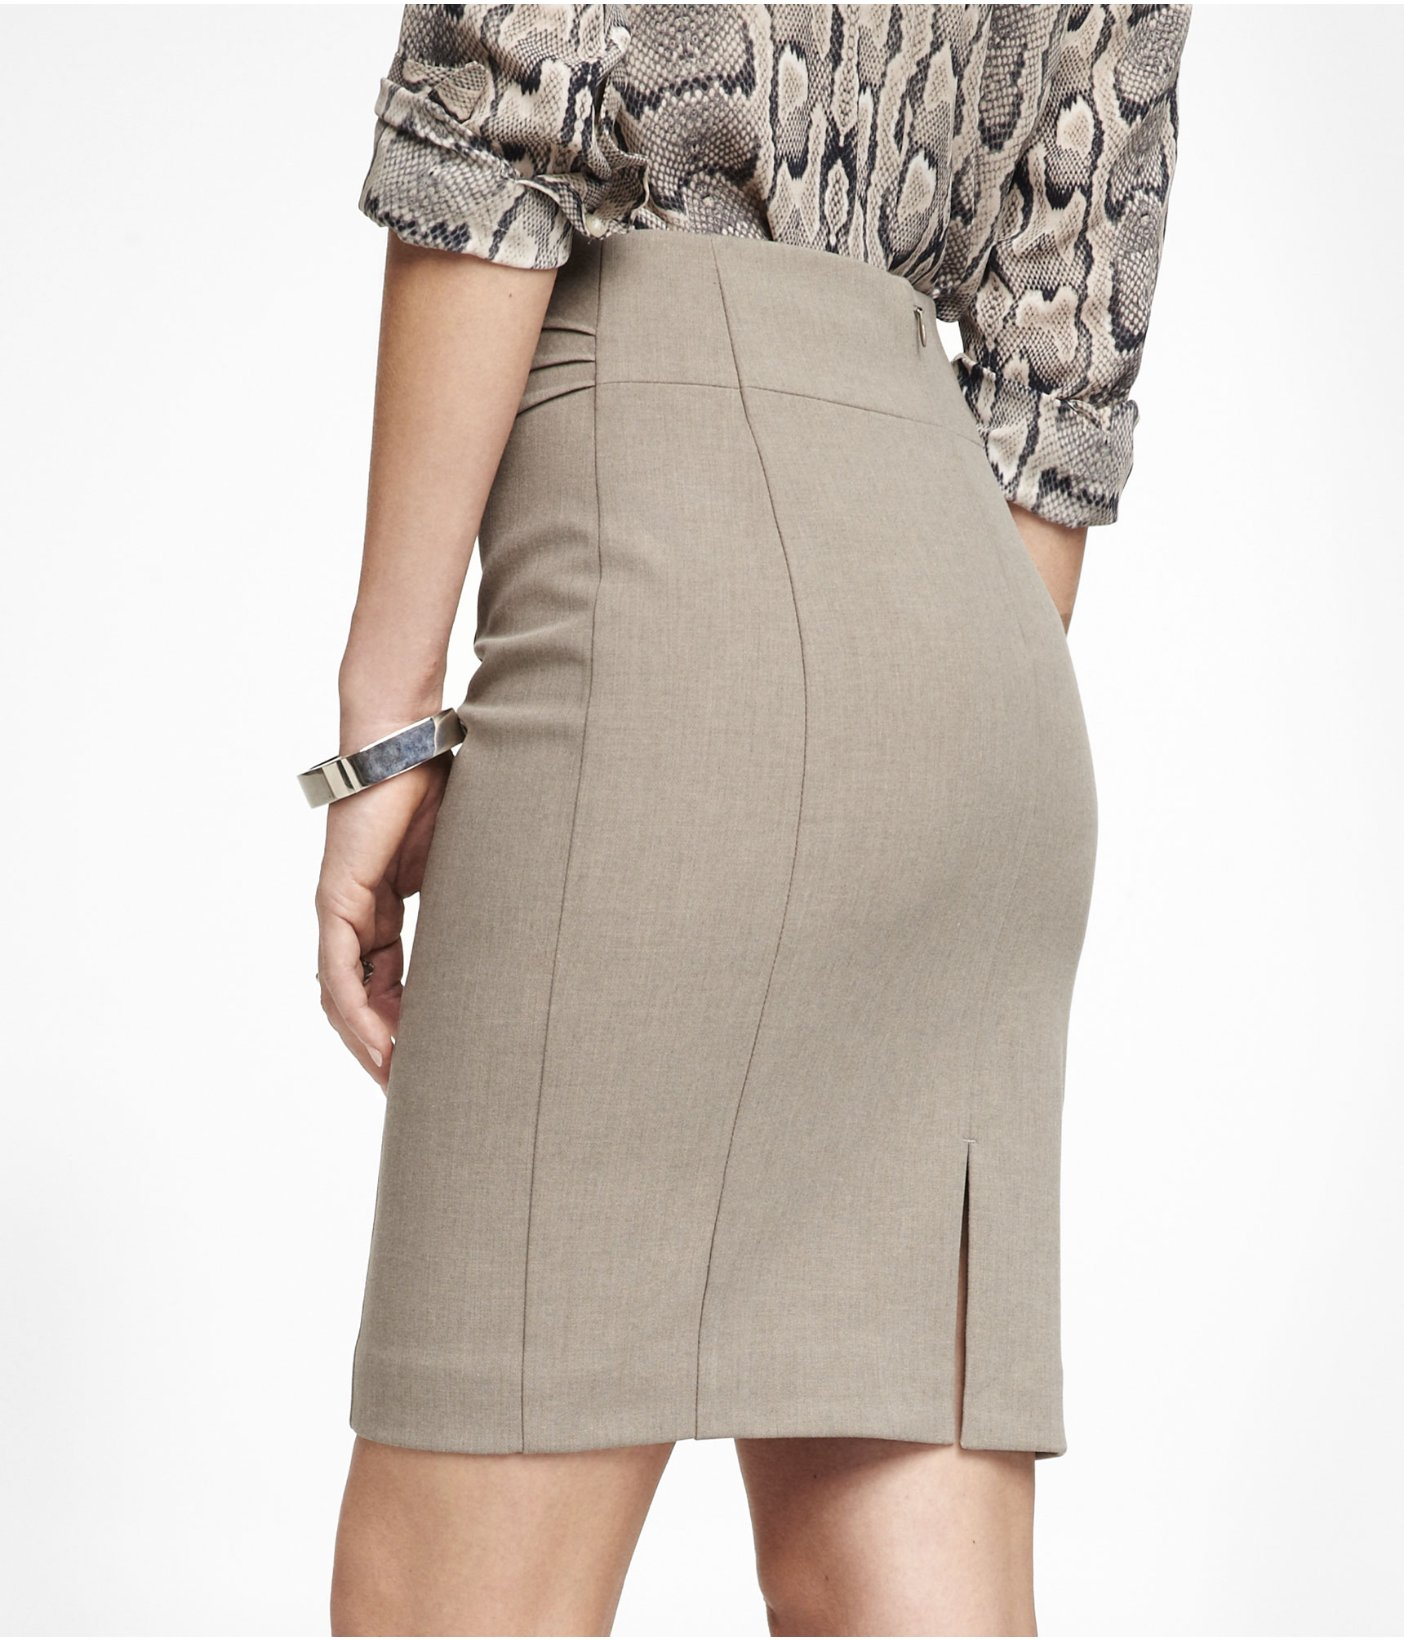 Express High Waist Pintucked Pencil Skirt in Natural | Lyst